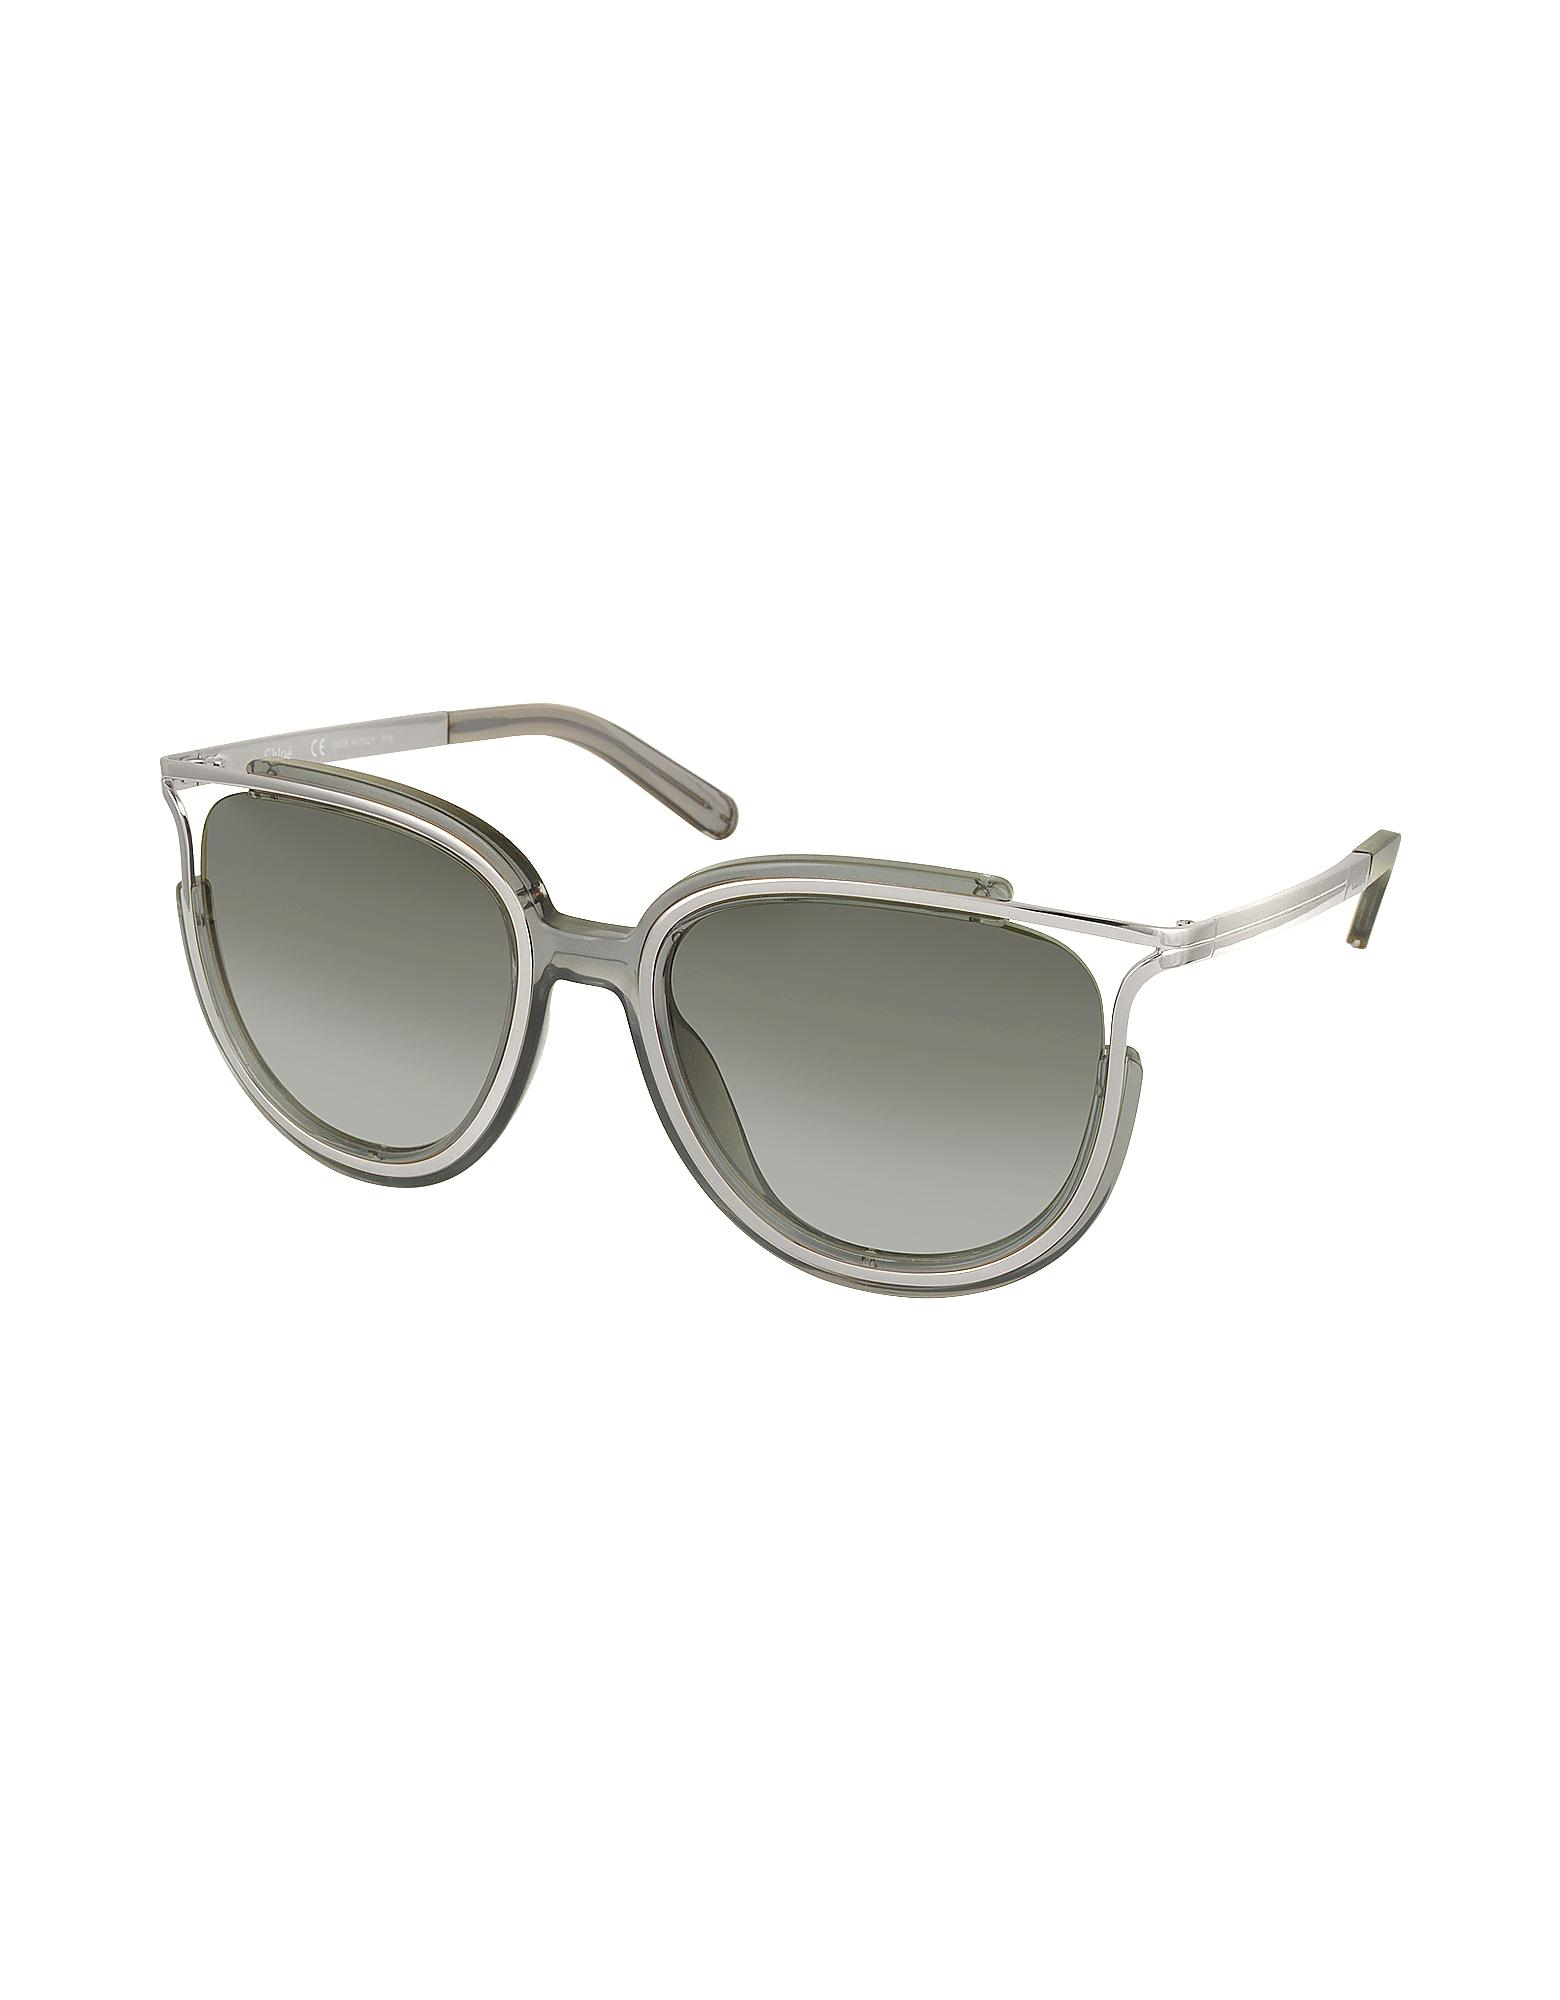 2e235b19cb4 Chloé Jayme Ce 688s 036 Gray Acetate And Silver Metal Square Women s ...